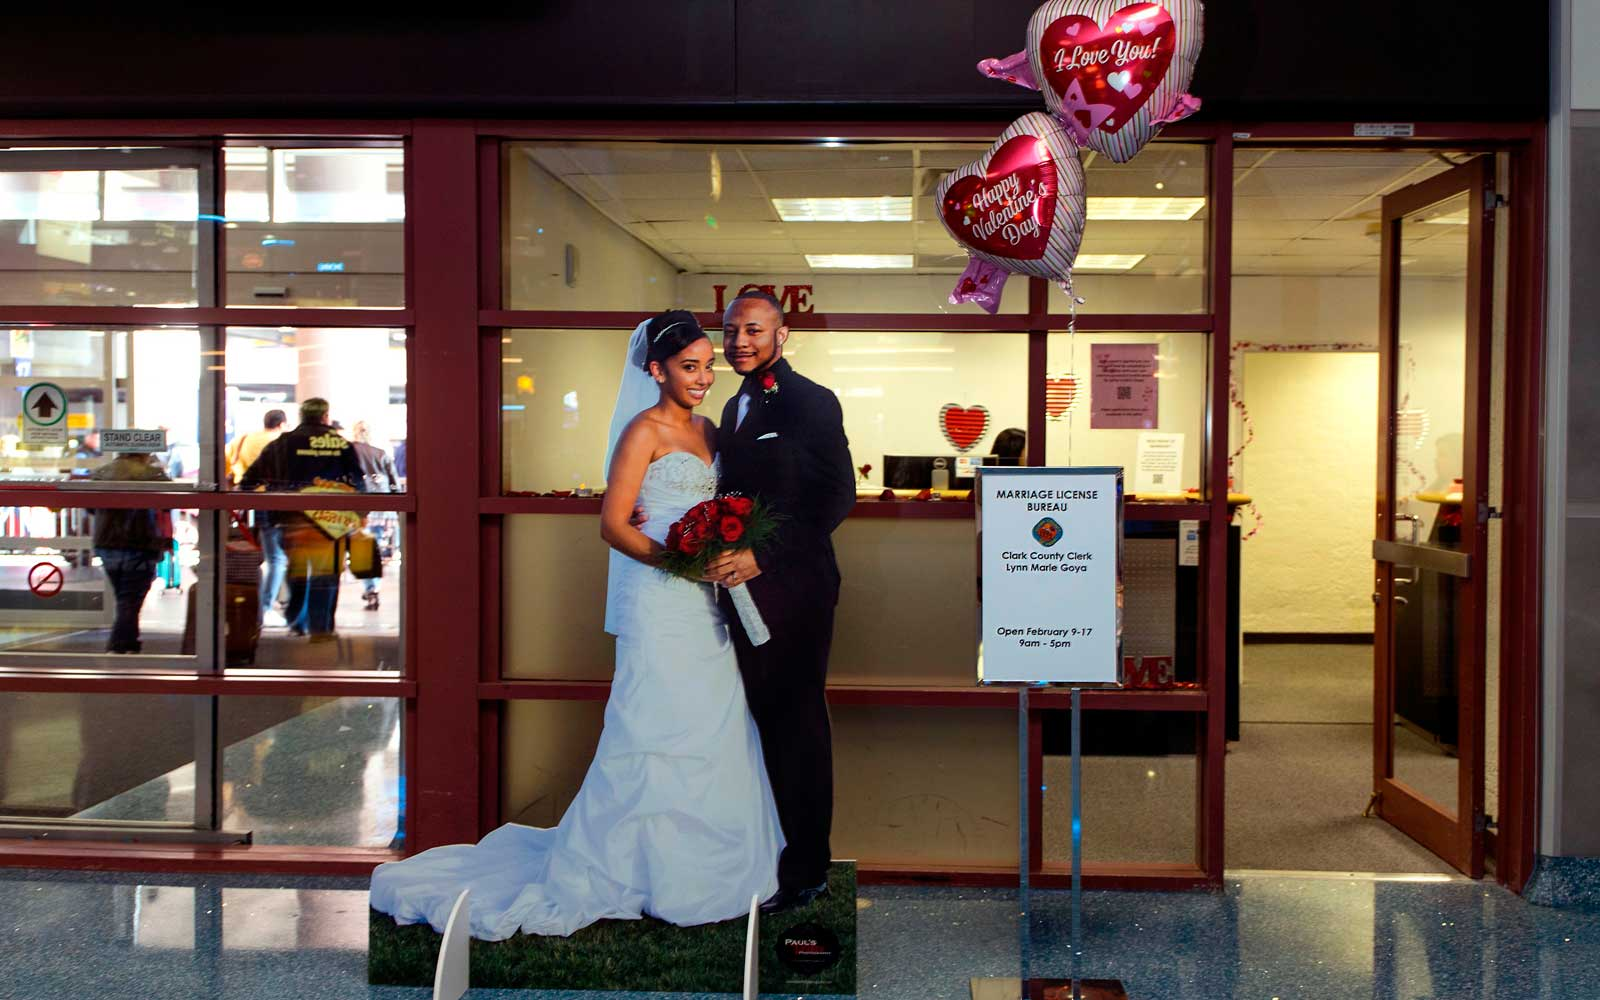 You Can Now Get a Marriage License the Moment You Land in Las Vegas